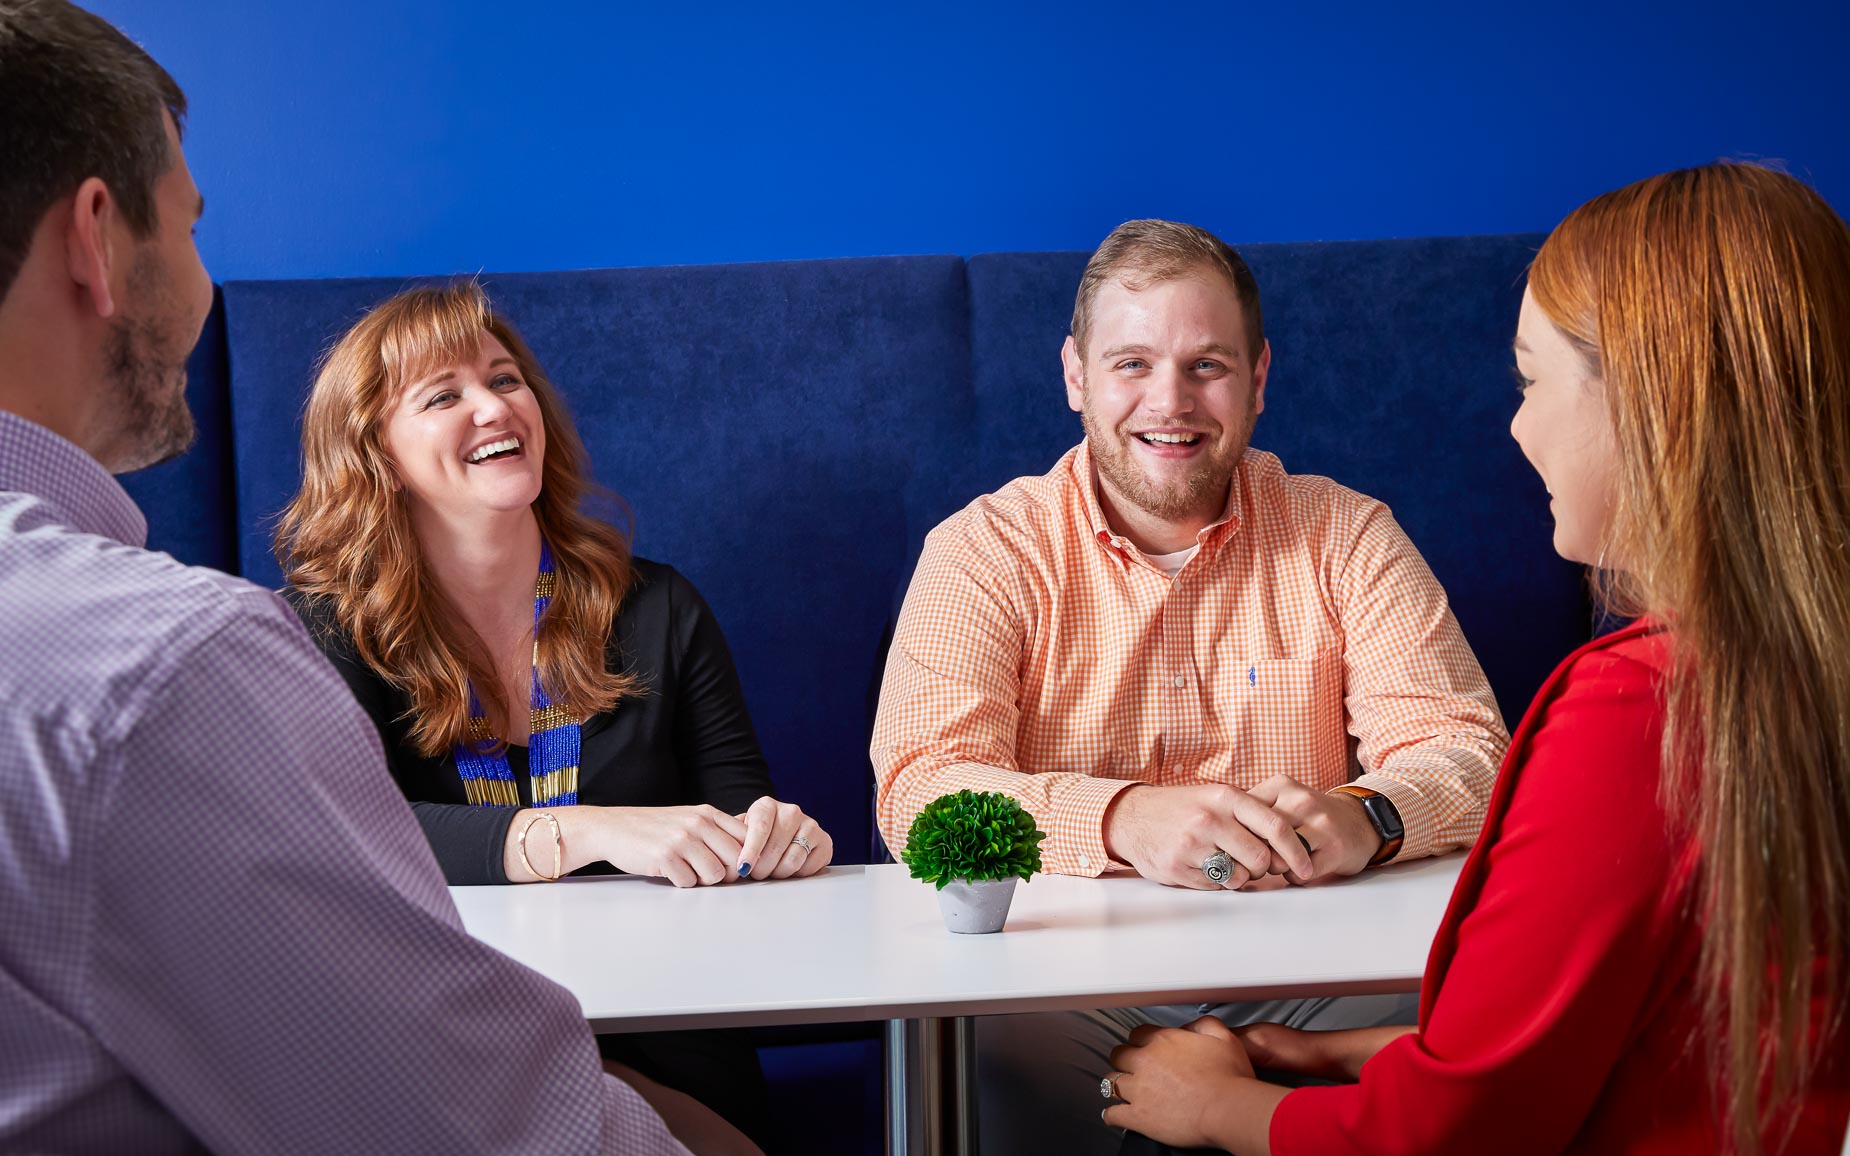 Atlanta Colleagues Share Laughs in Corporate Cafe